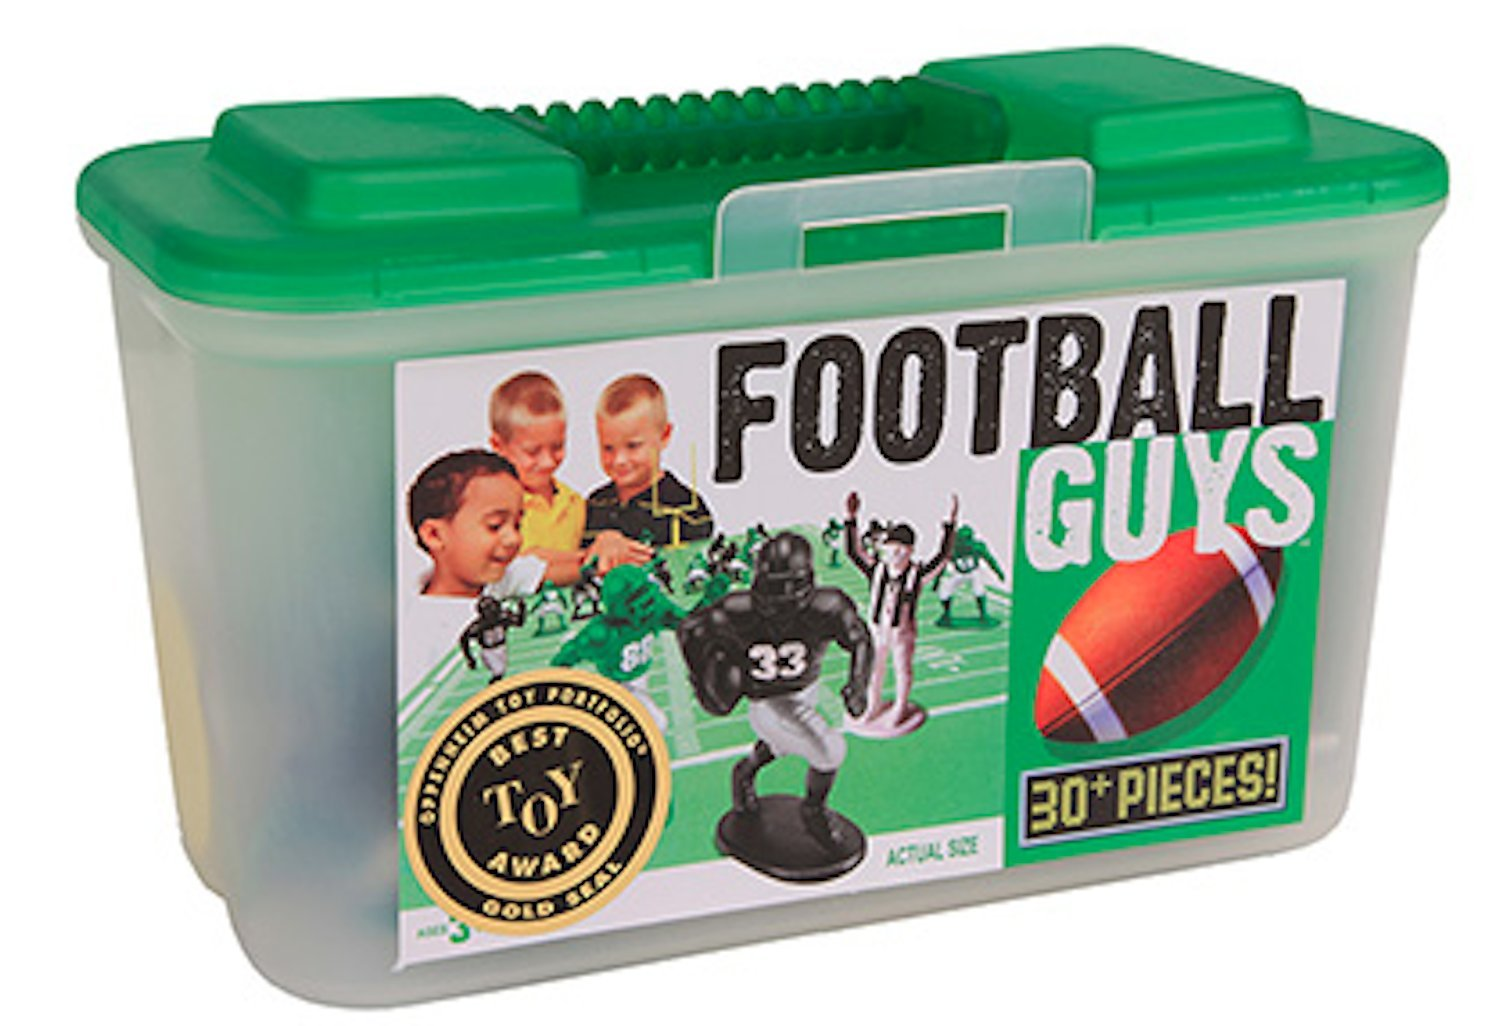 Kaskey Kids Football Guys: Green vs. Black – Inspires Imagination with Open-Ended Play – Includes 2 Full Teams and More – For Ages 3 and Up